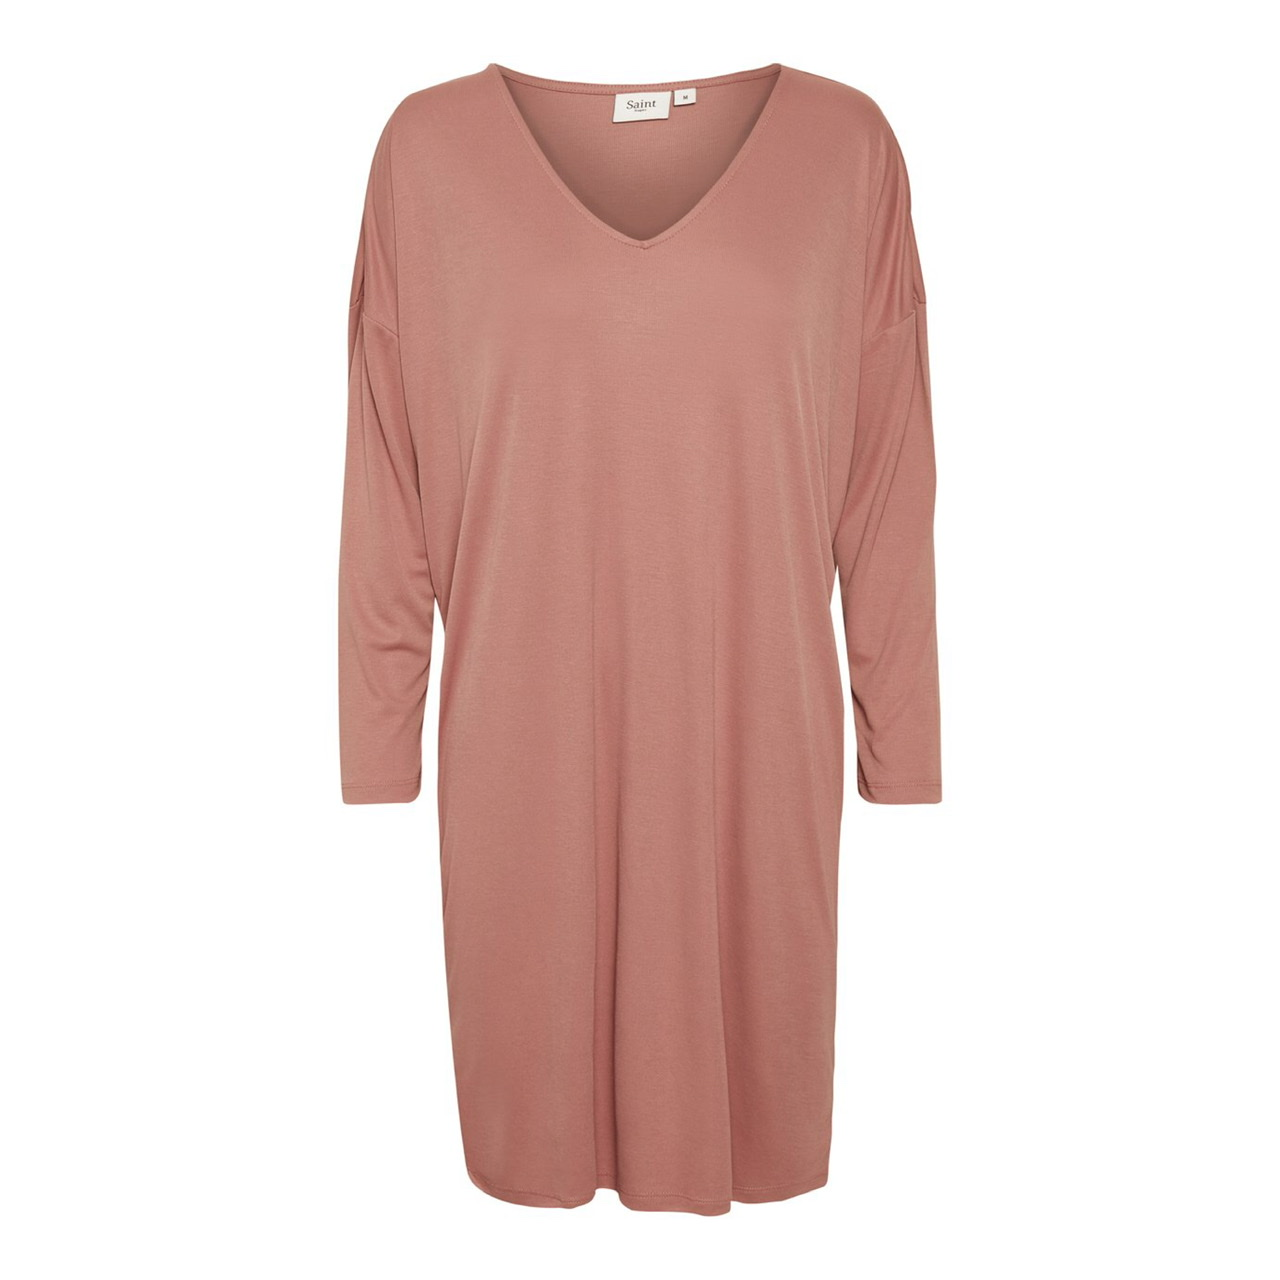 Giana Pink Jersey Dress by Saint Tropez